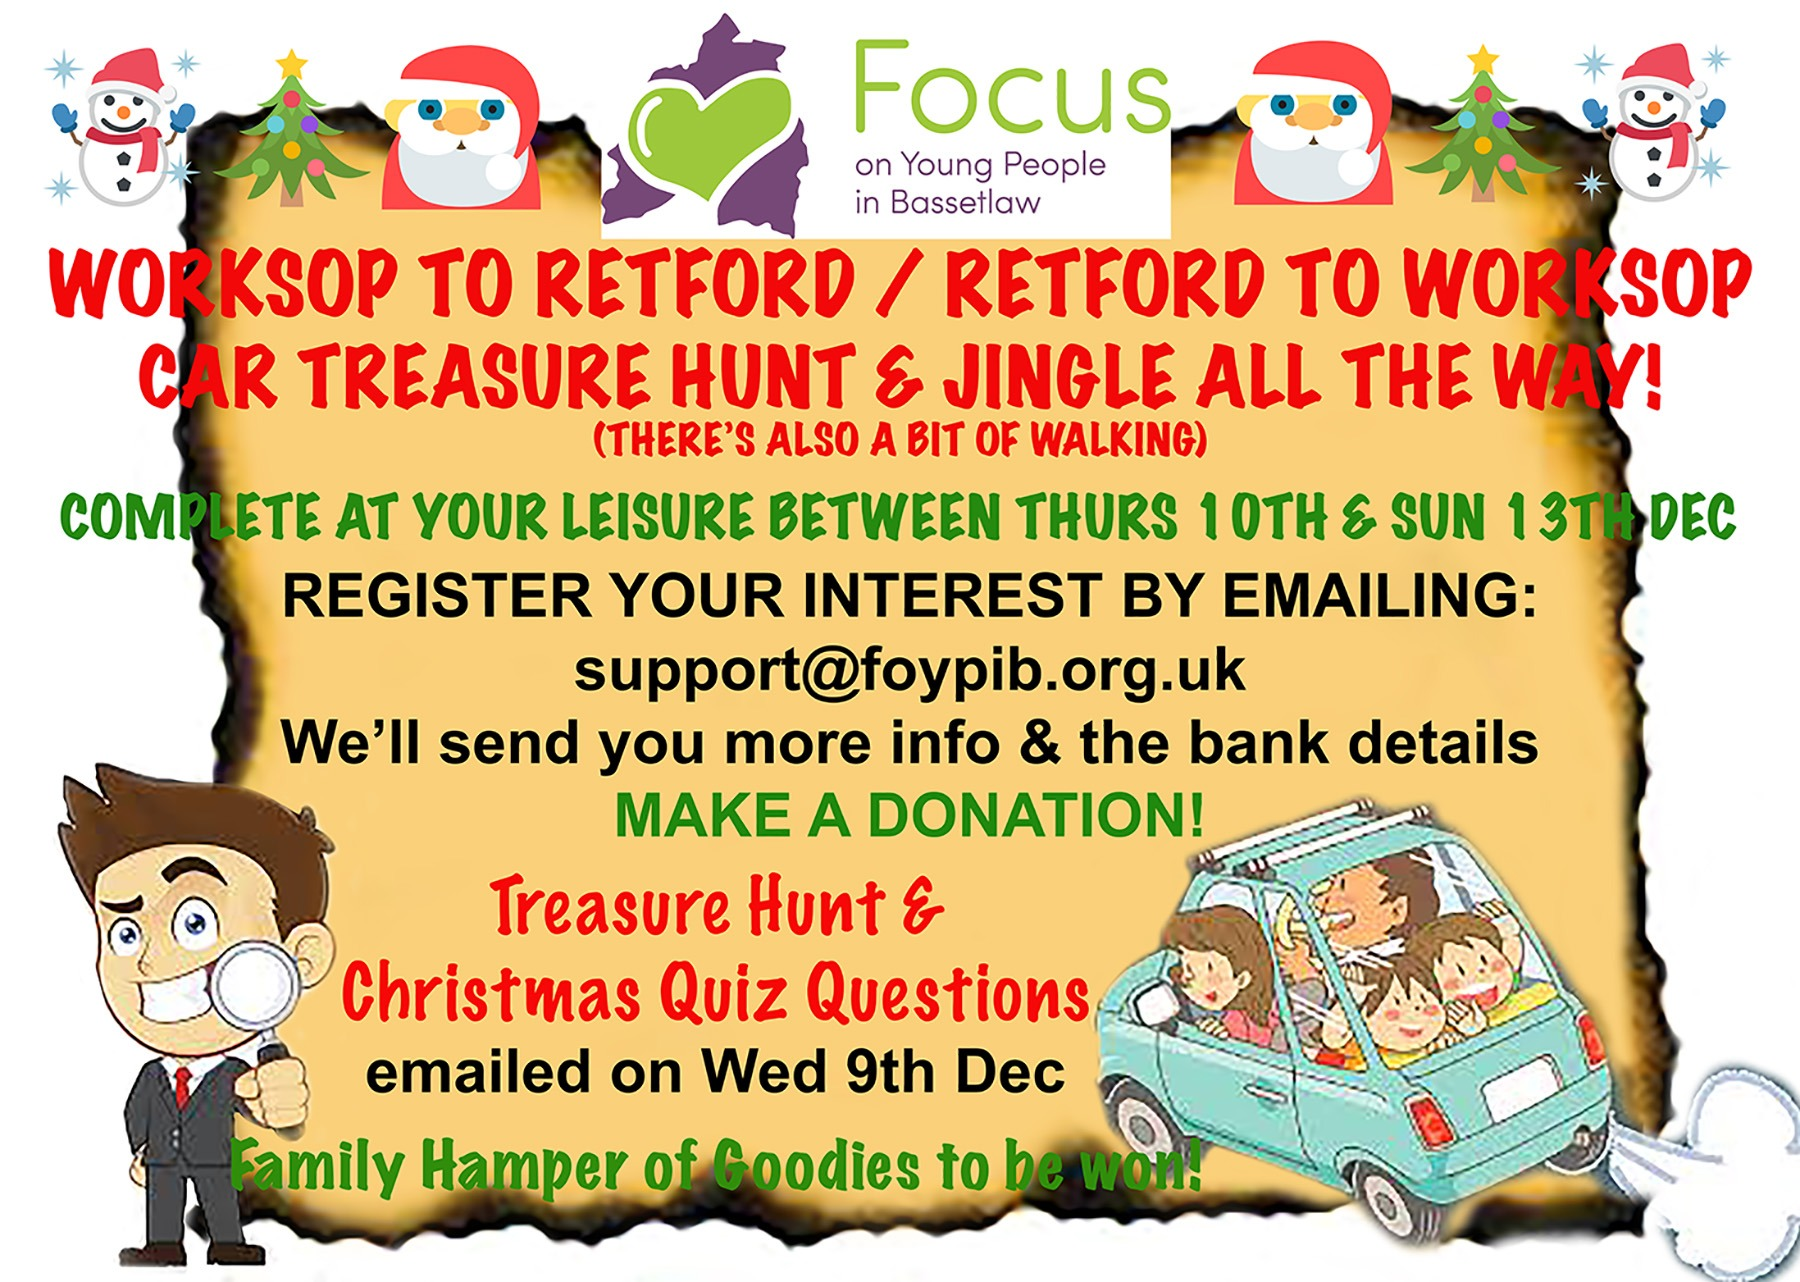 Car Treasure Hunt & Christmas Quiz